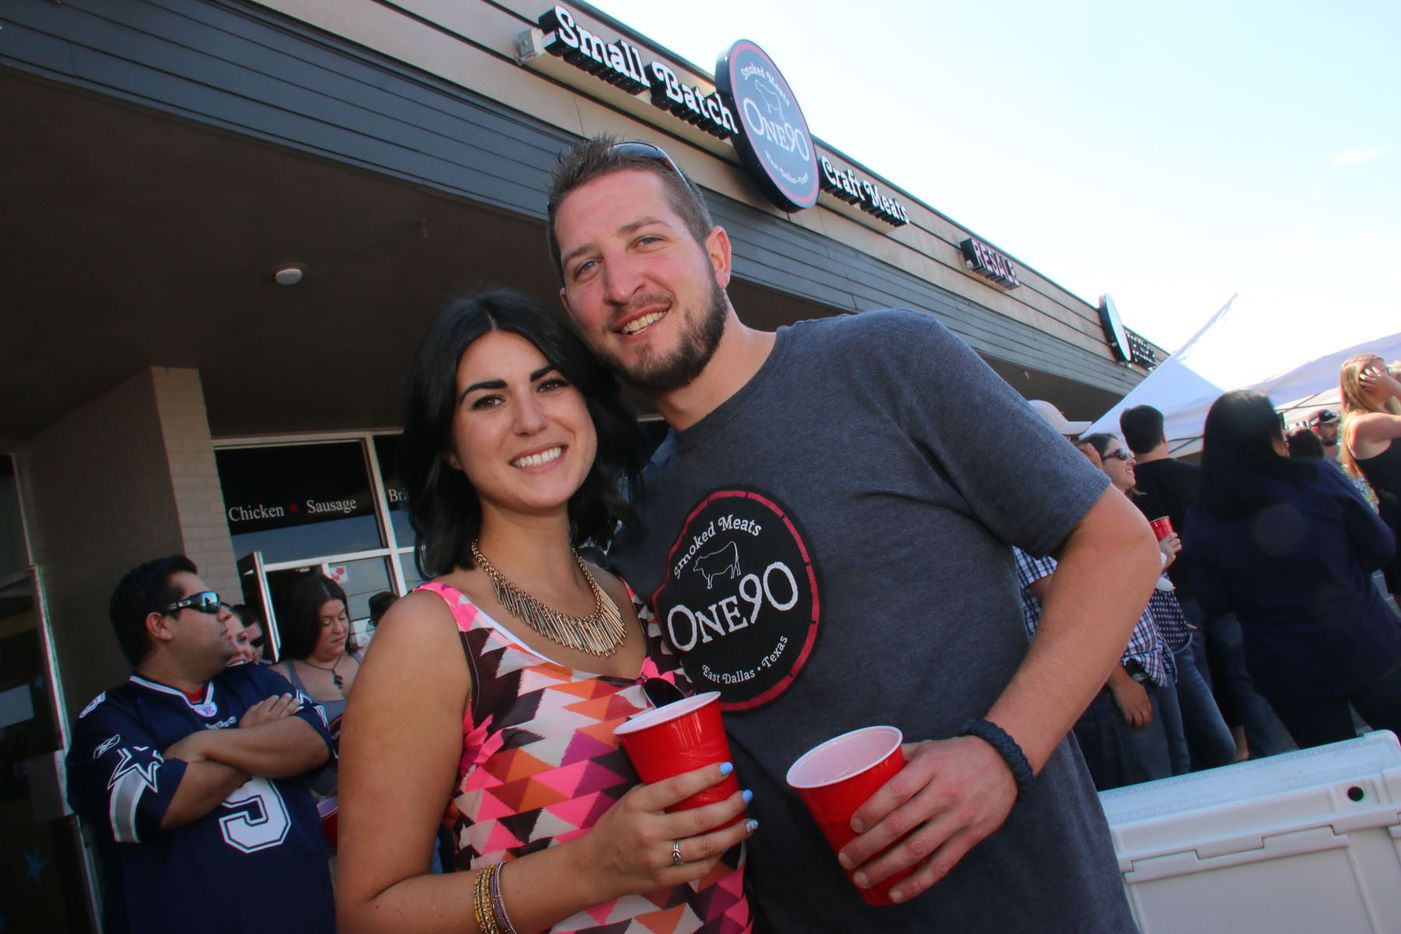 Mirelle Benita and Adam Weatherread at One90 Smoked Meats grand opening in East Dallas on October 4, 2015.